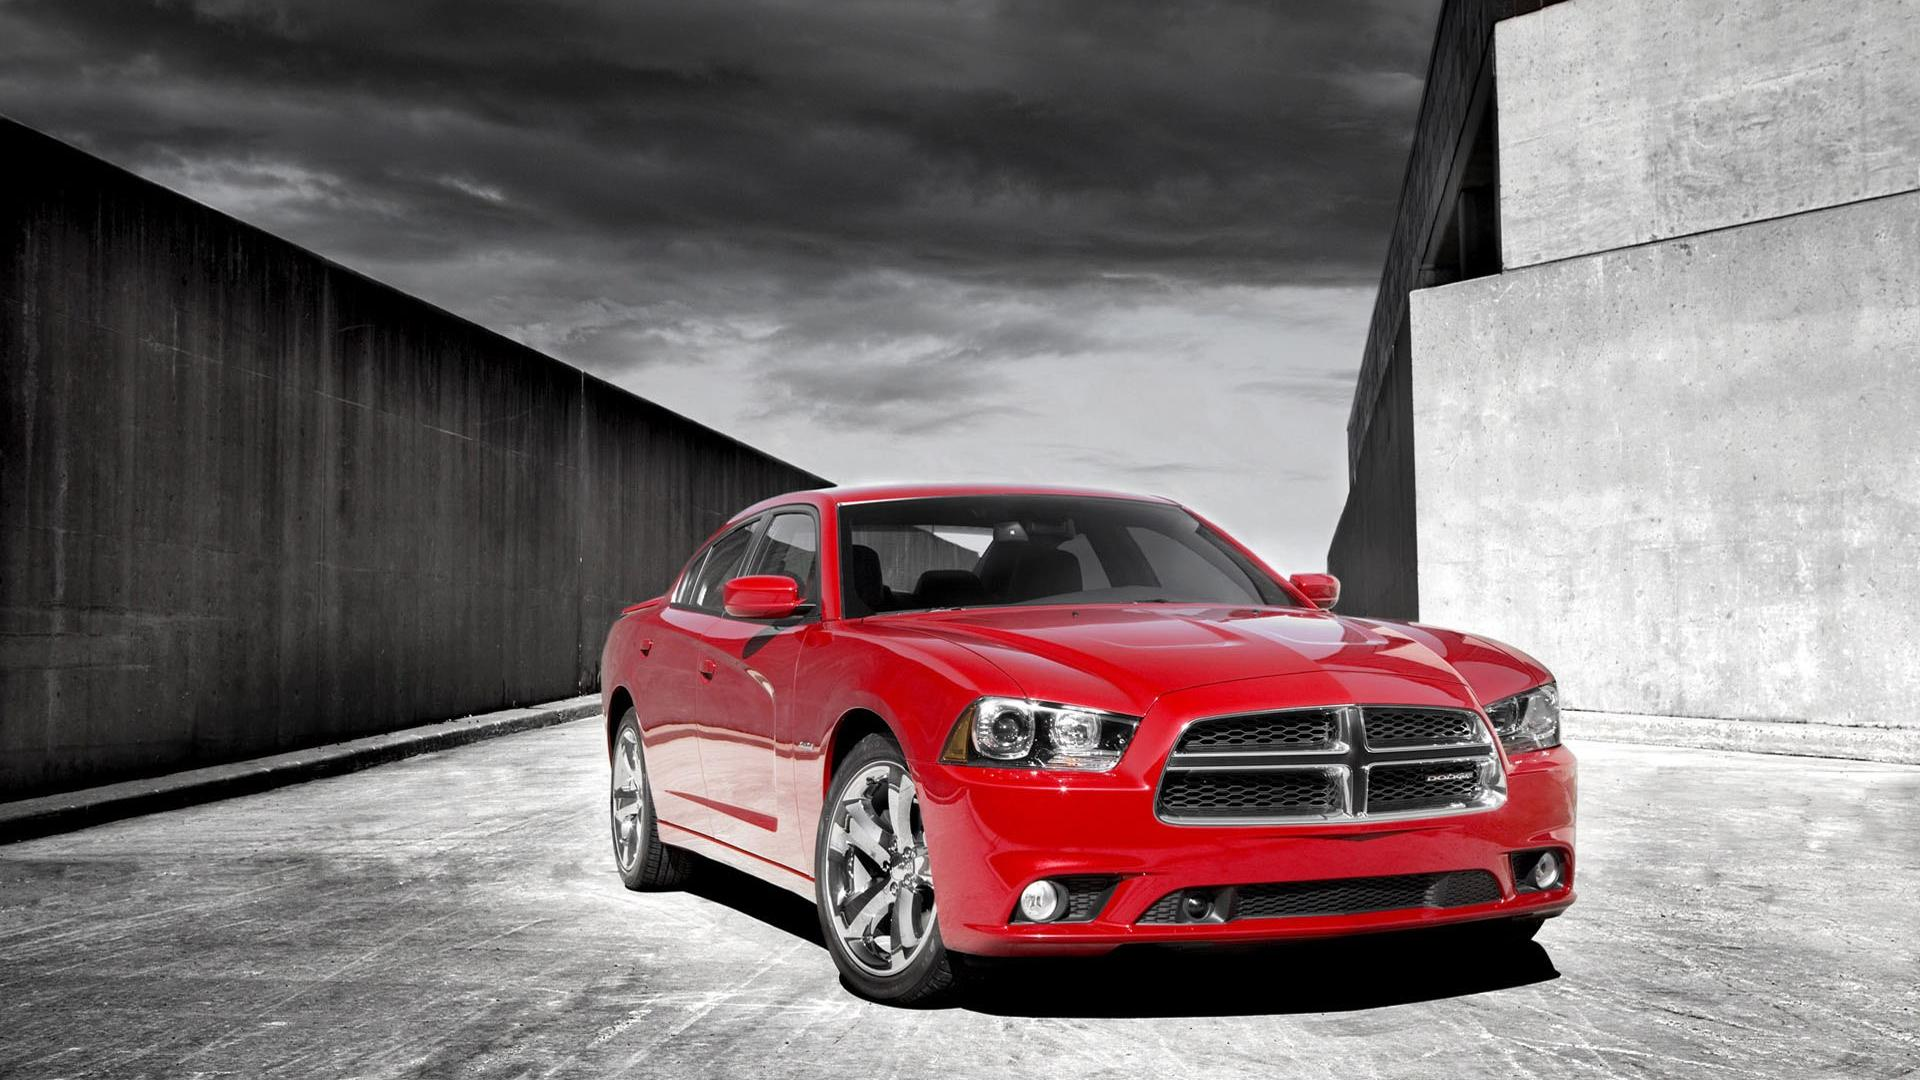 2012 dodge charger rt red wide hd wallpaper   5676   HQ Desktop 1920x1080